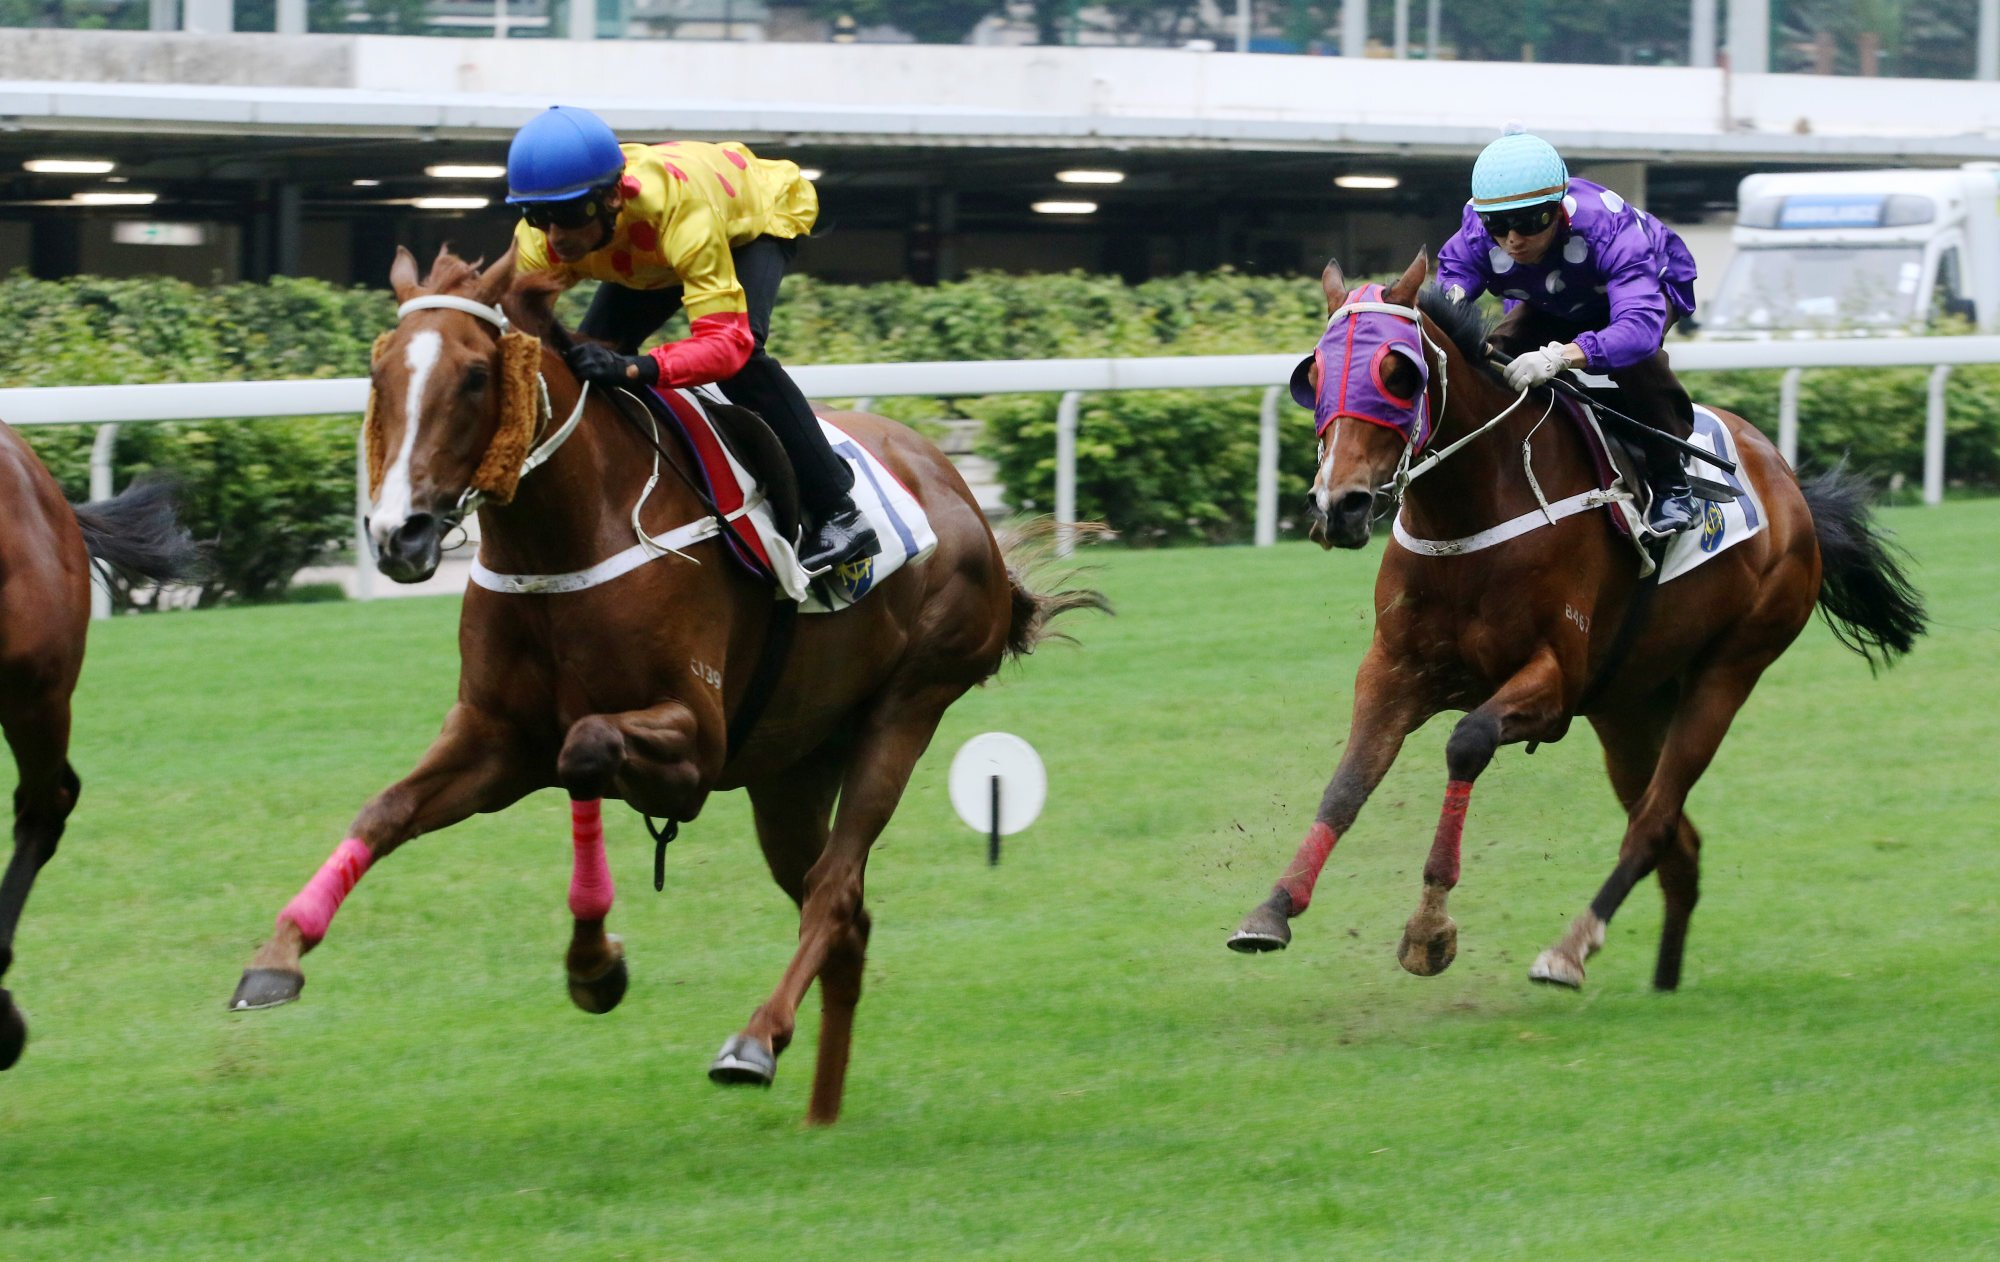 Gold Win trials at Happy Valley in 2019.